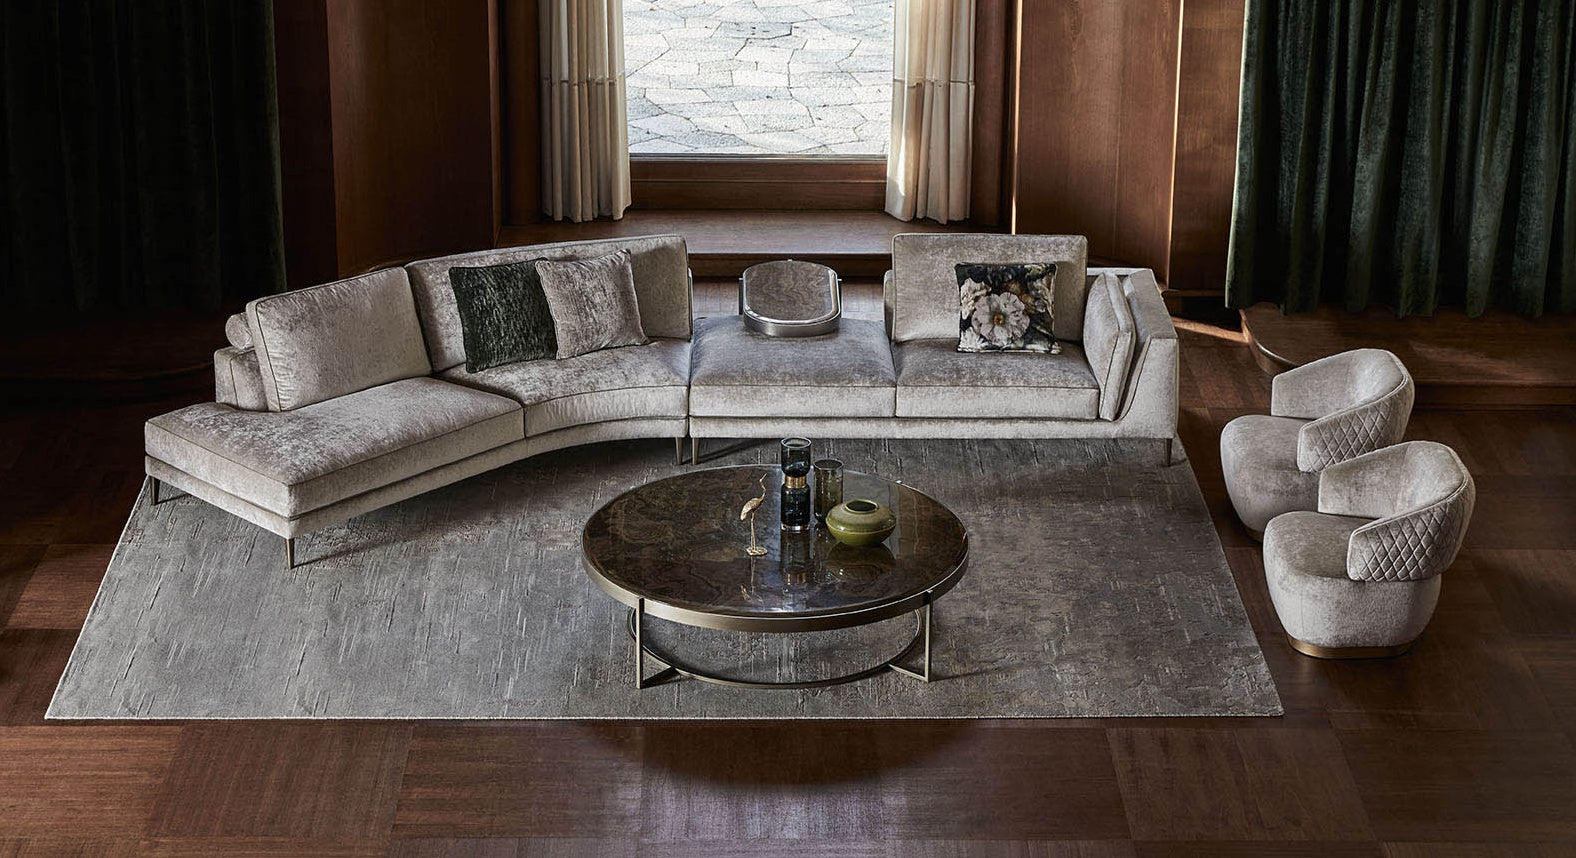 Contemporary Interiors – Shop Opera Contemporary at LuxDeco.com